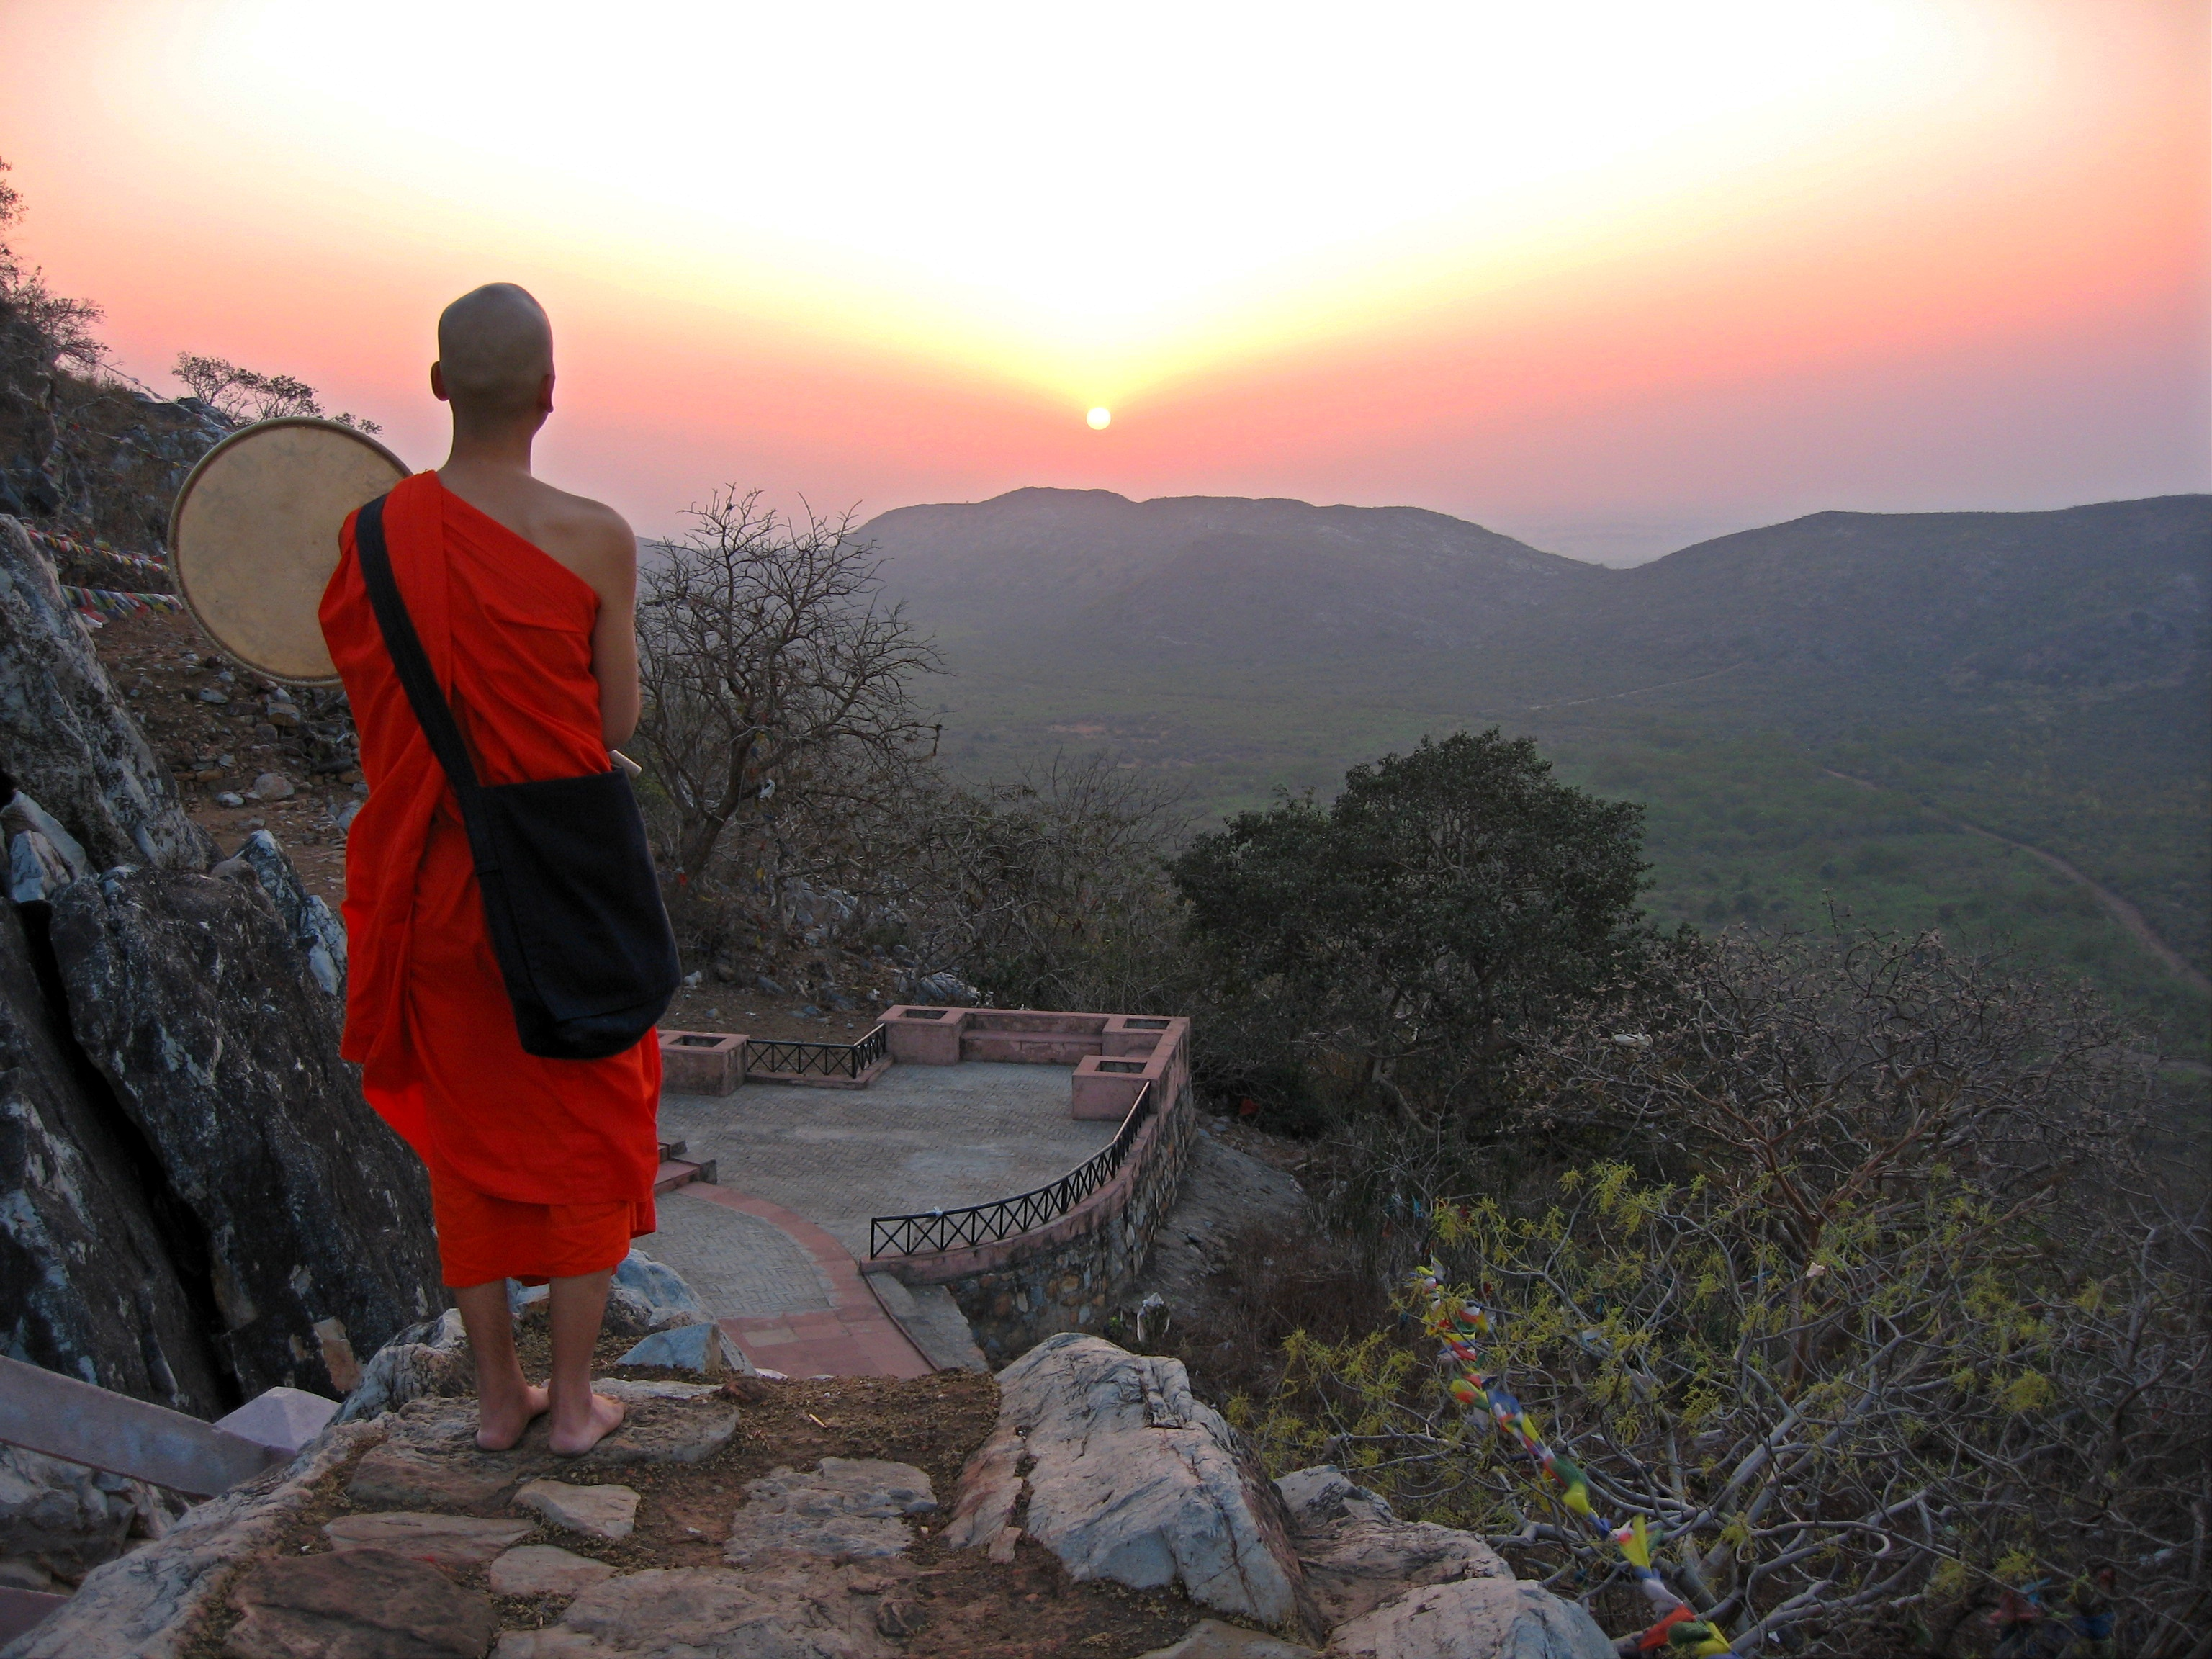 Young monk of the Nipponzan Myōhōji Order during his morning meditation practise on Gridhakuta (Vulture Peak) near Rajgir